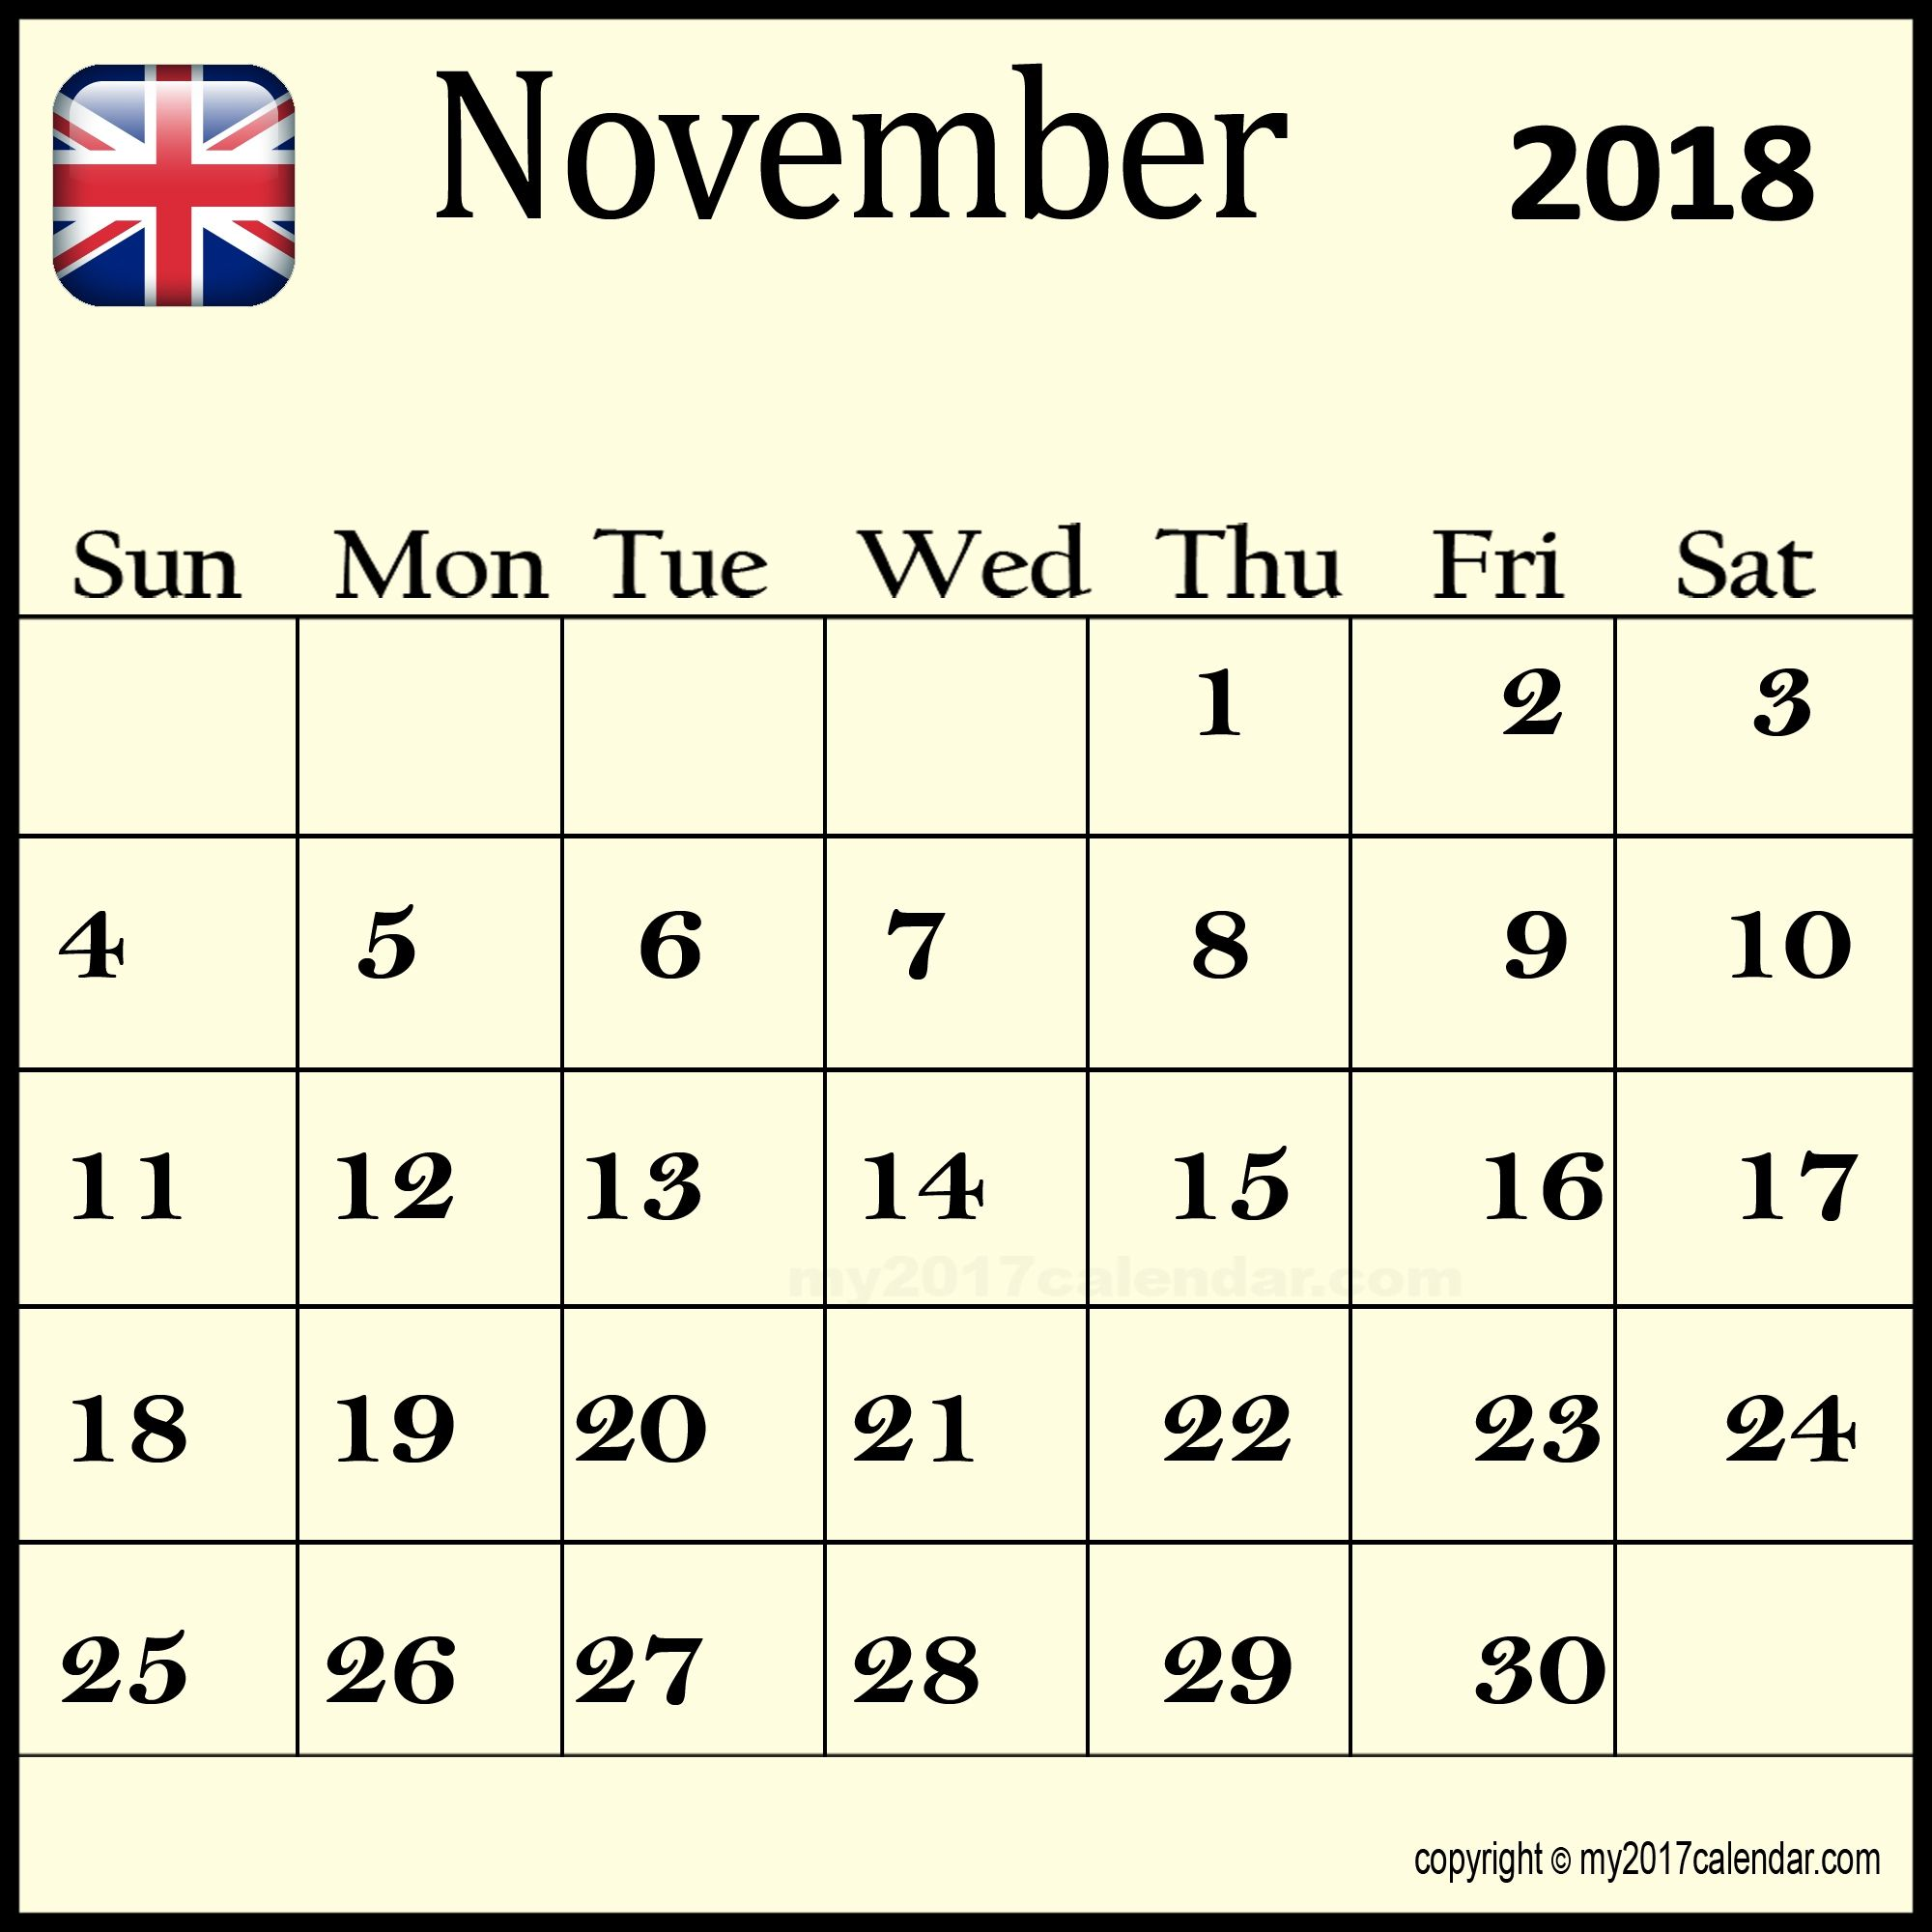 november 2018 calendar uk public holidays